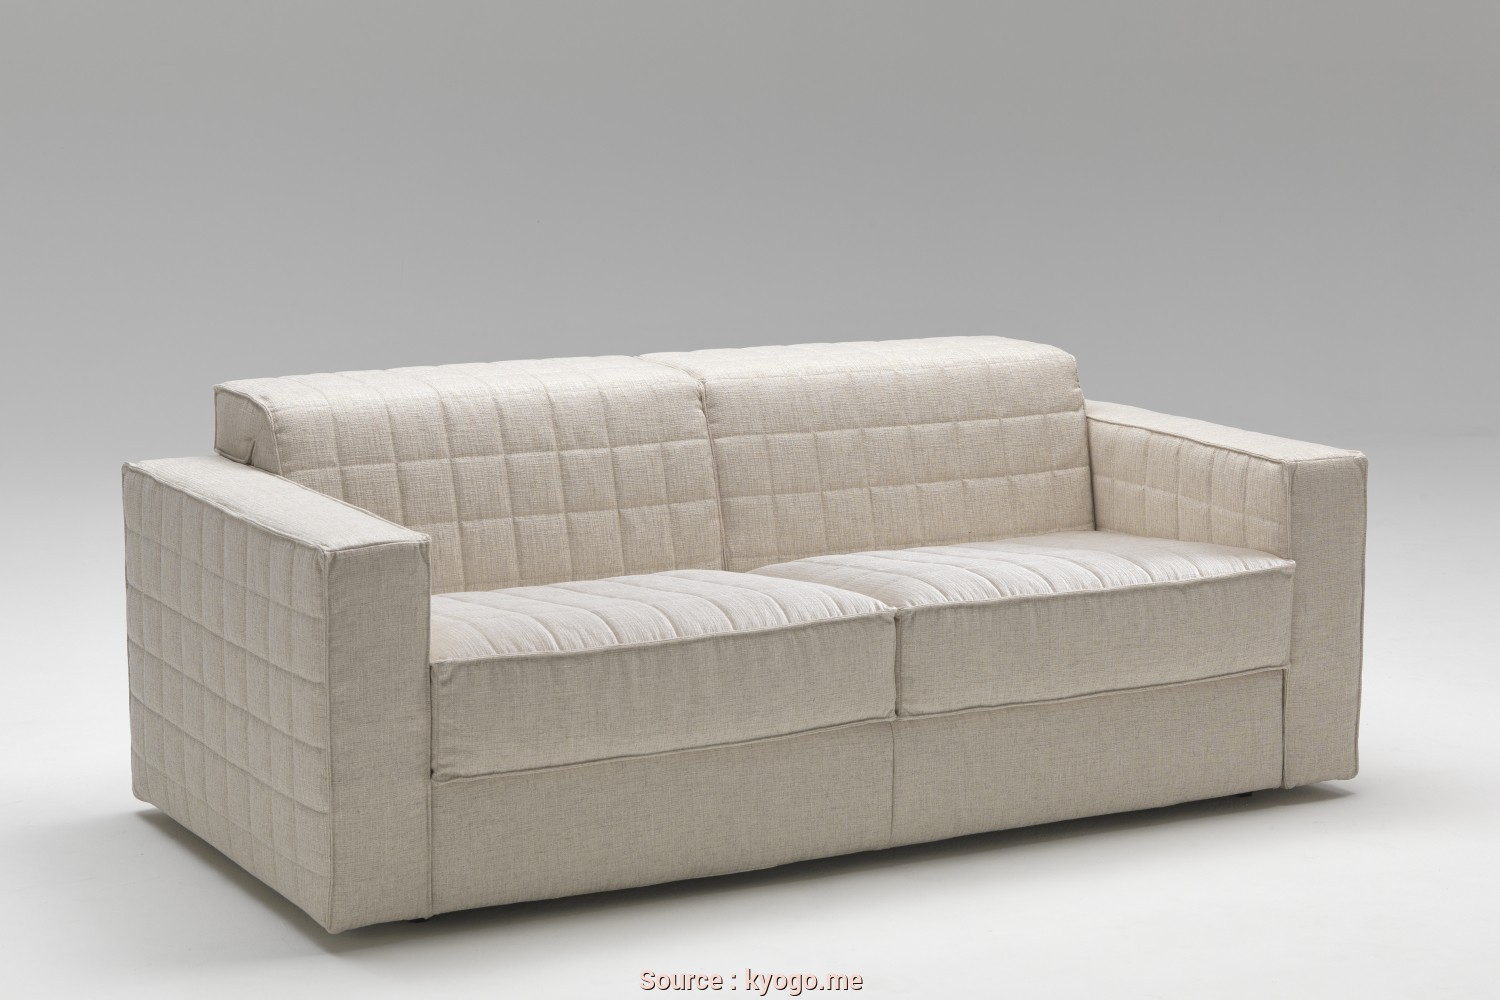 Ikea sofa 50 euro ikea com sofa best of 50 lovely ikea cheap sofa